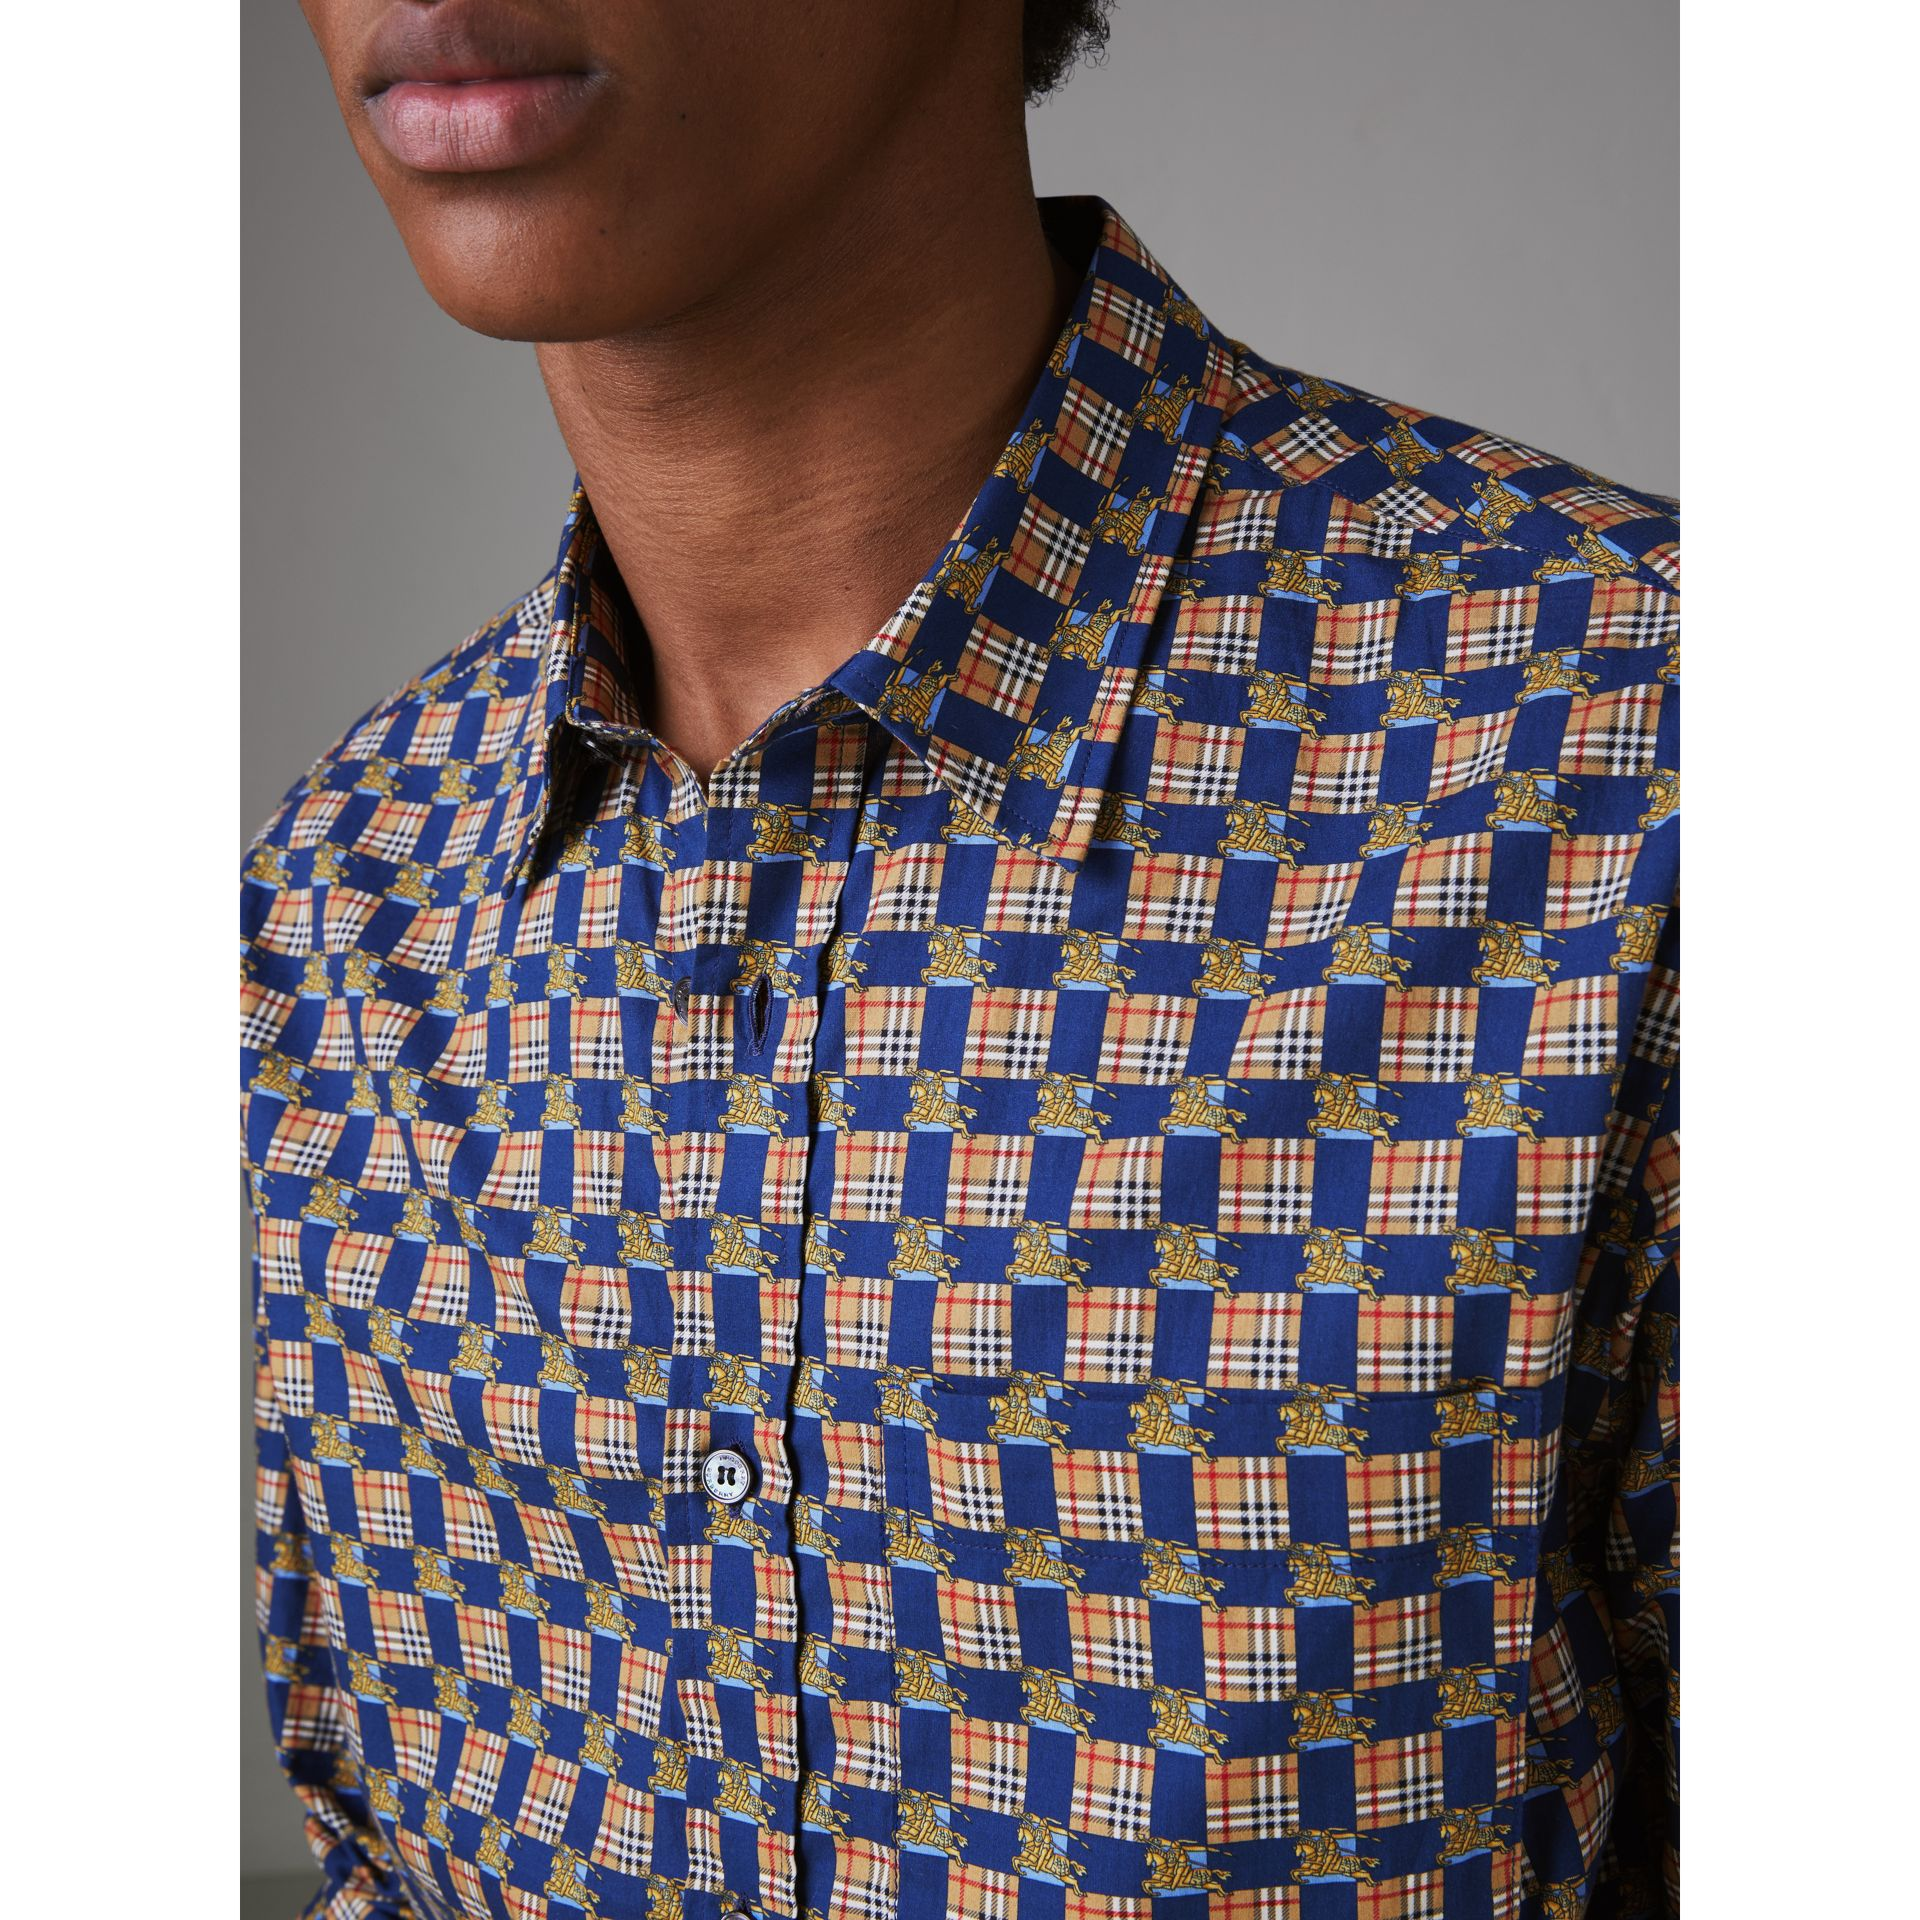 Tiled Archive Print Cotton Shirt in Navy - Men | Burberry - gallery image 1